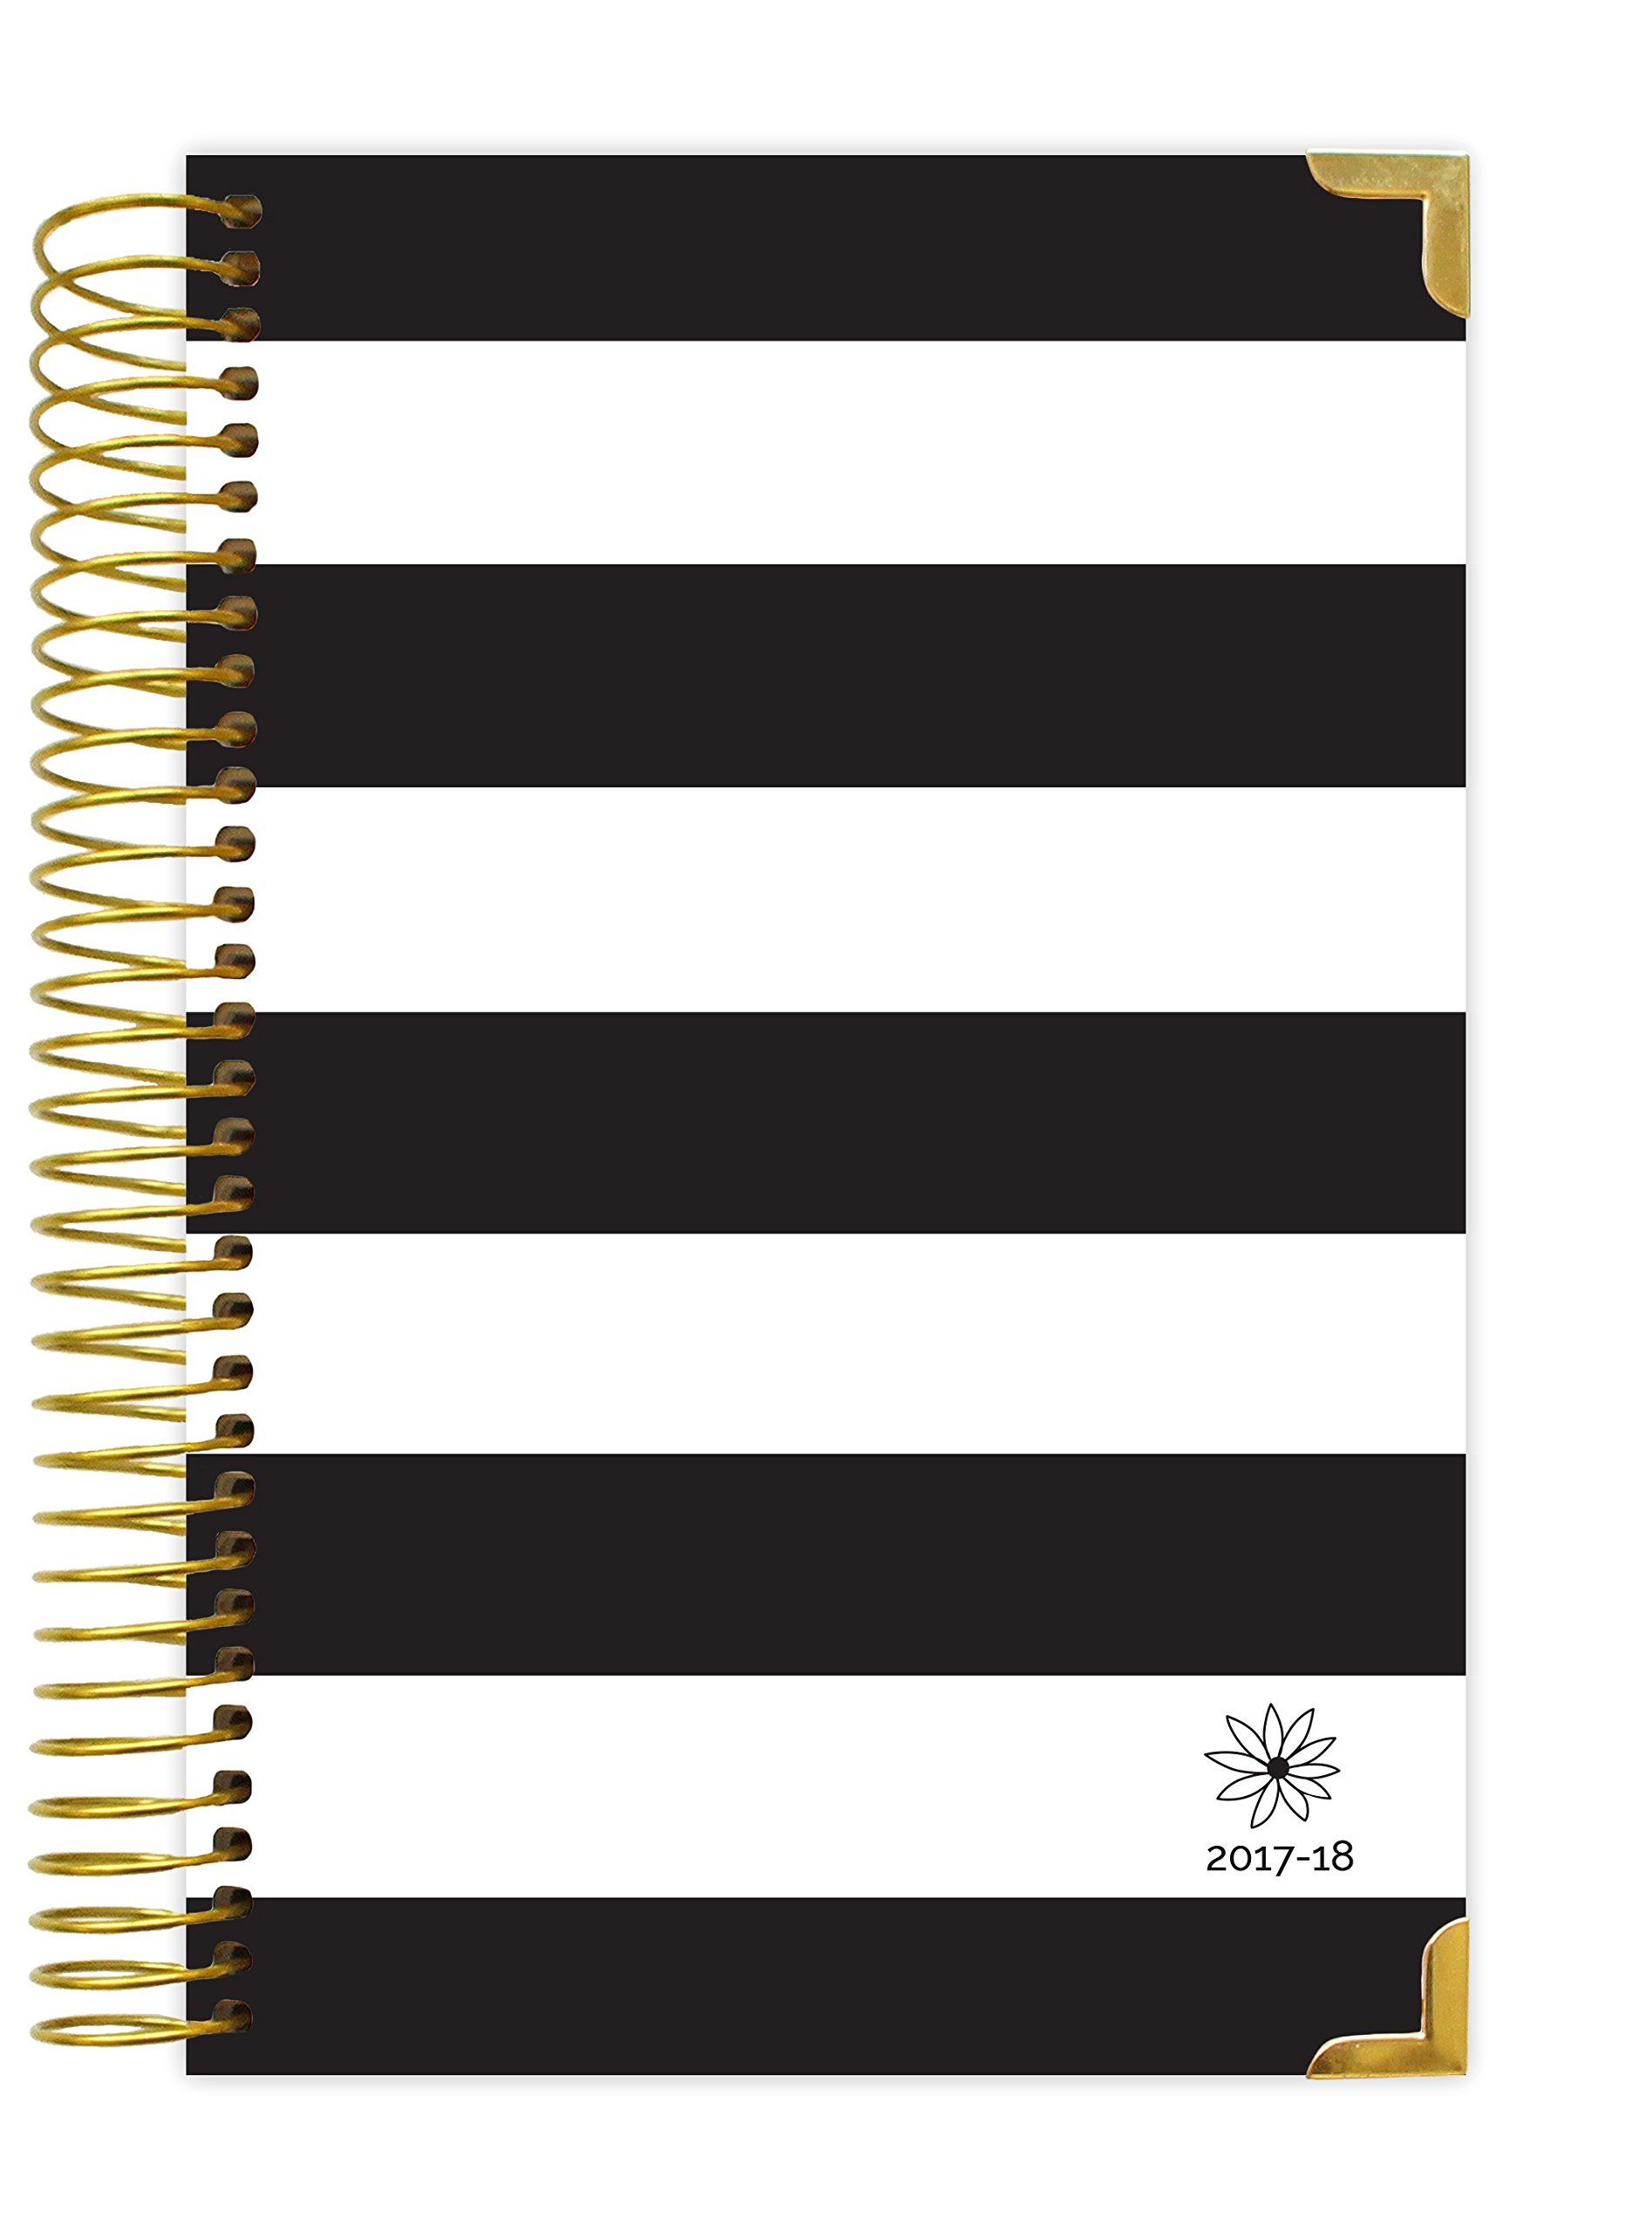 bloom daily planners 2017-18 Academic Year HARD COVER Daily Planner - Passion/Goal Organizer - Monthly and Weekly Datebook and Calendar - August 2017 - July 2018 - 6'' x 8.25'' - Black & White Stripes